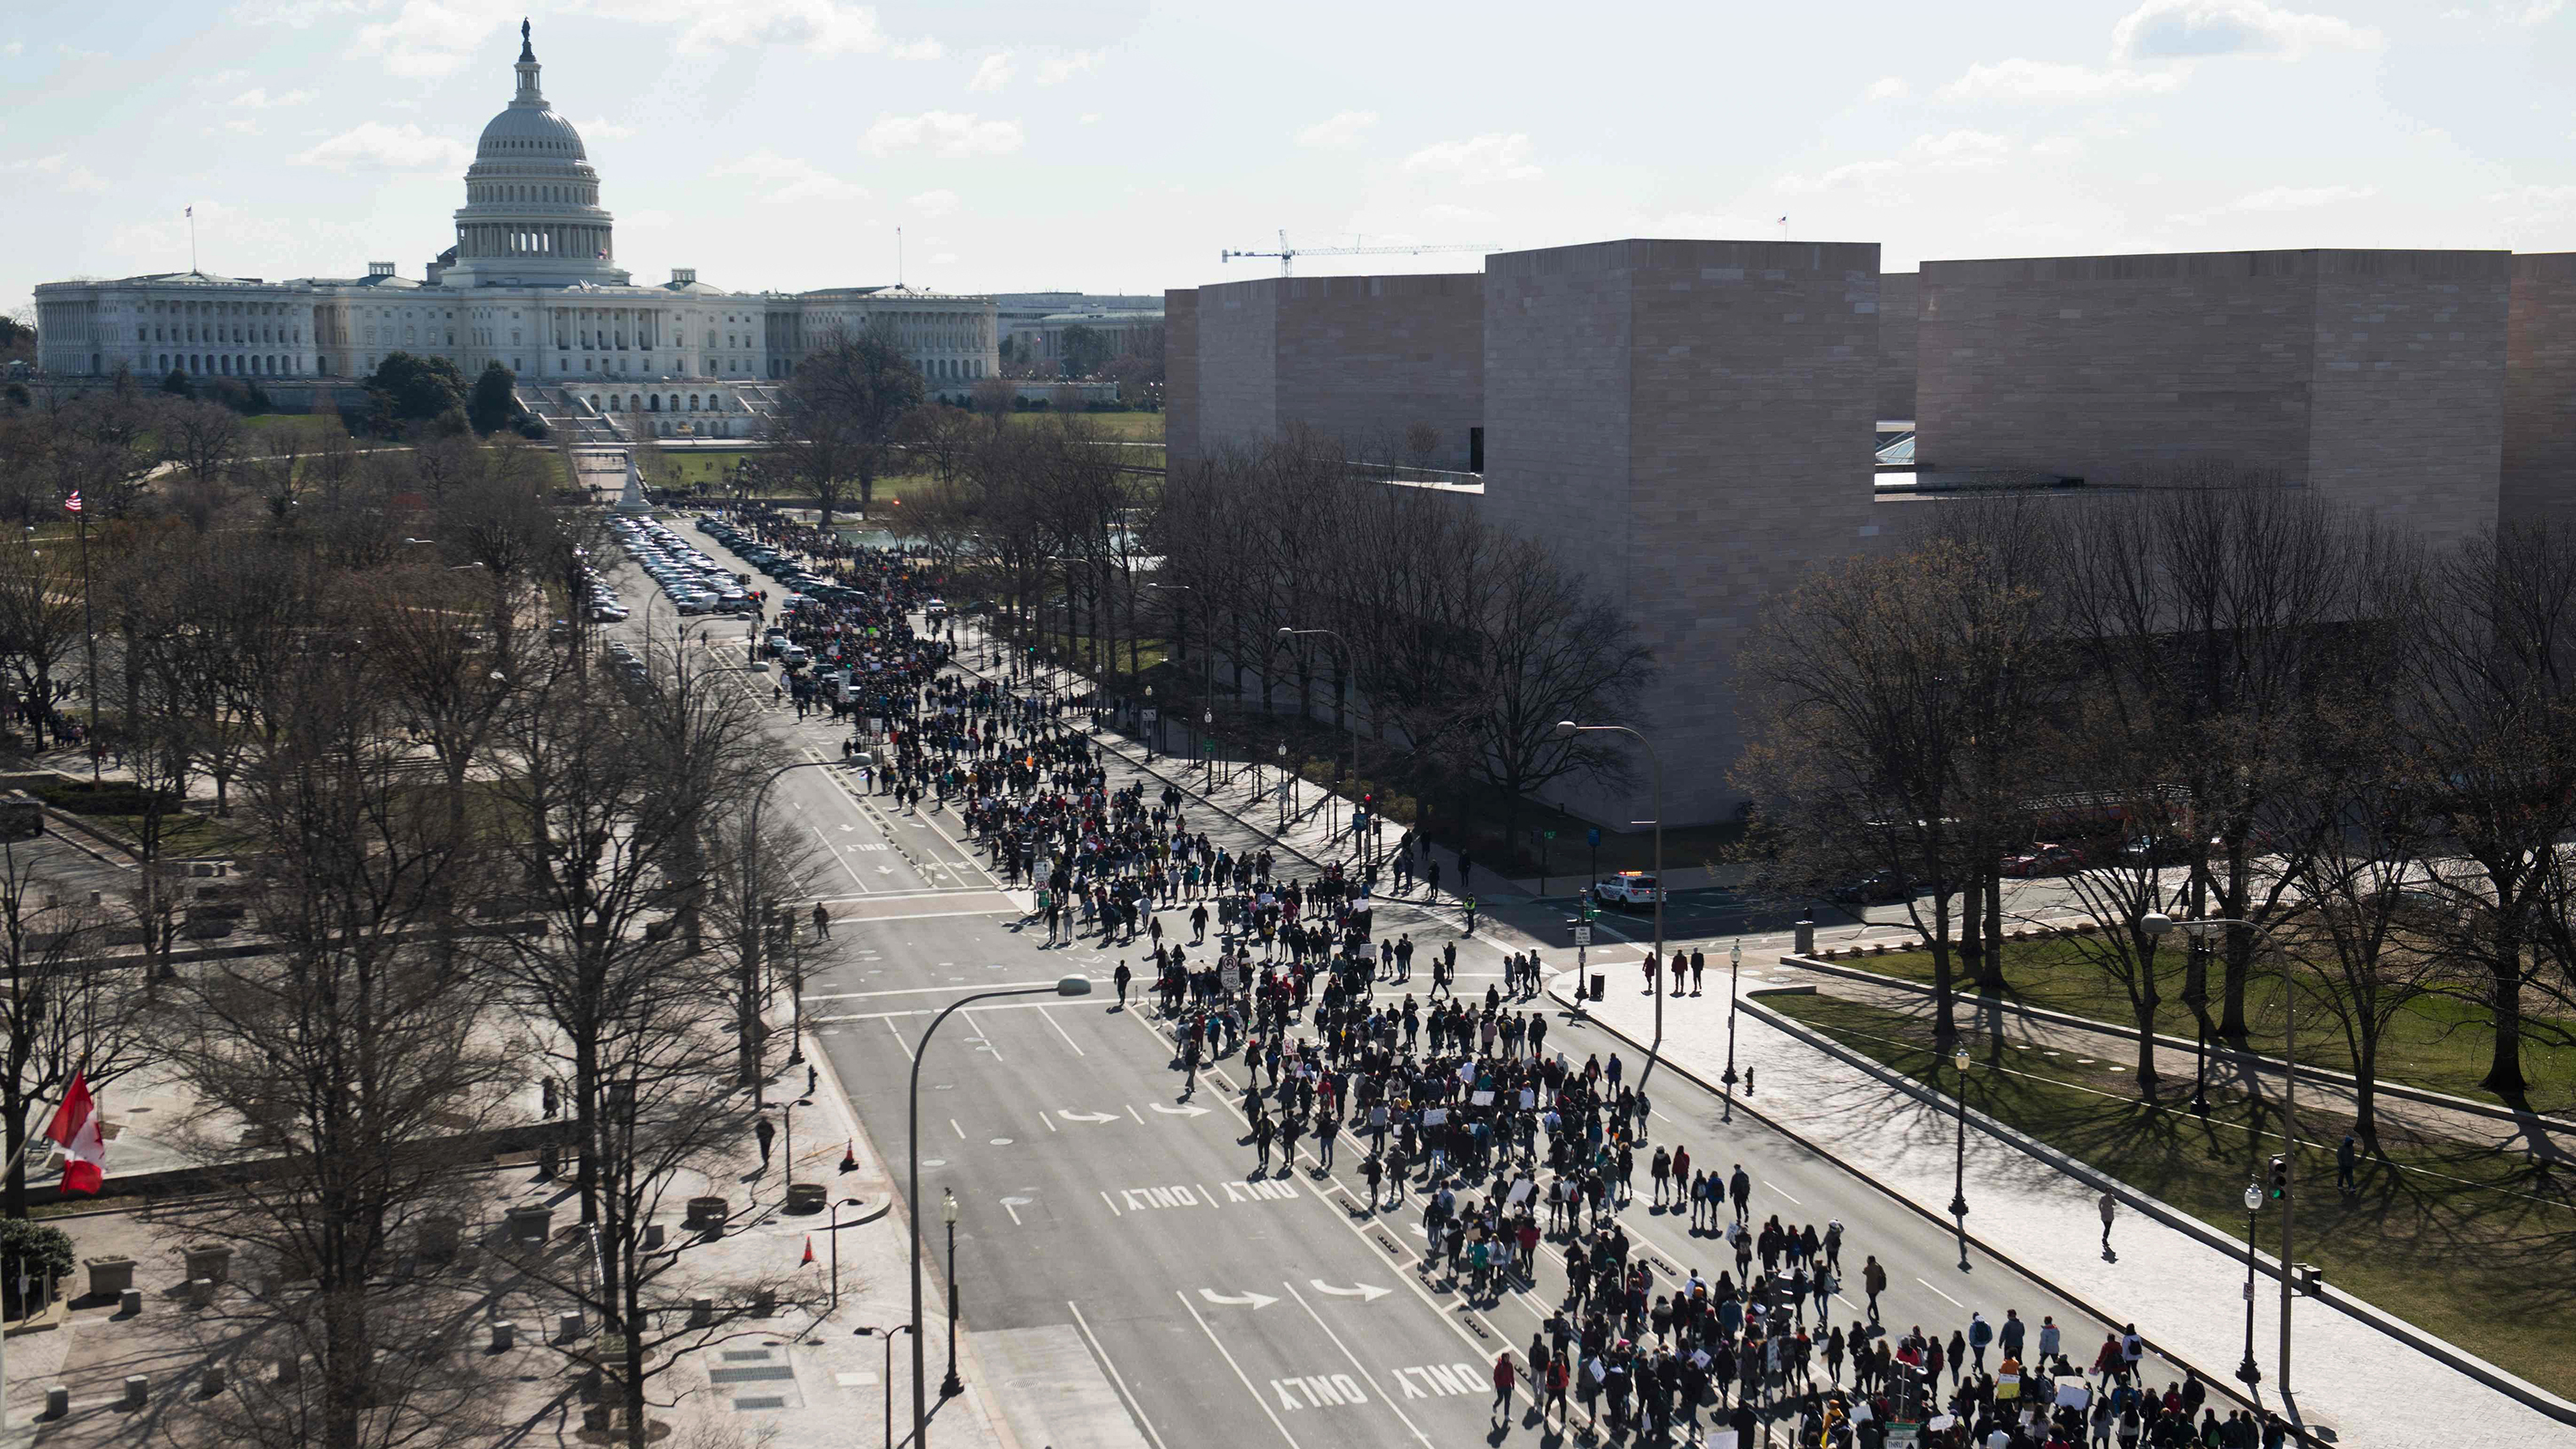 Thousands of local students march down Pennsylvania Avenue to the US Capitol during a nationwide student walkout for gun control in Washington, DC, March 14, 2018.                     Students across the US walked out of classes on March 14, in a nationwide call for action against gun violence following the shooting deaths last month at a Florida high school. The nationwide protest is being held one month to the day after Nikolas Cruz, a troubled 19-year-old former student at Stoneman Douglas, unleashed a hail of gunfire on his former classmates. / AFP PHOTO / SAUL LOEBSAUL LOEB/AFP/Getty Images